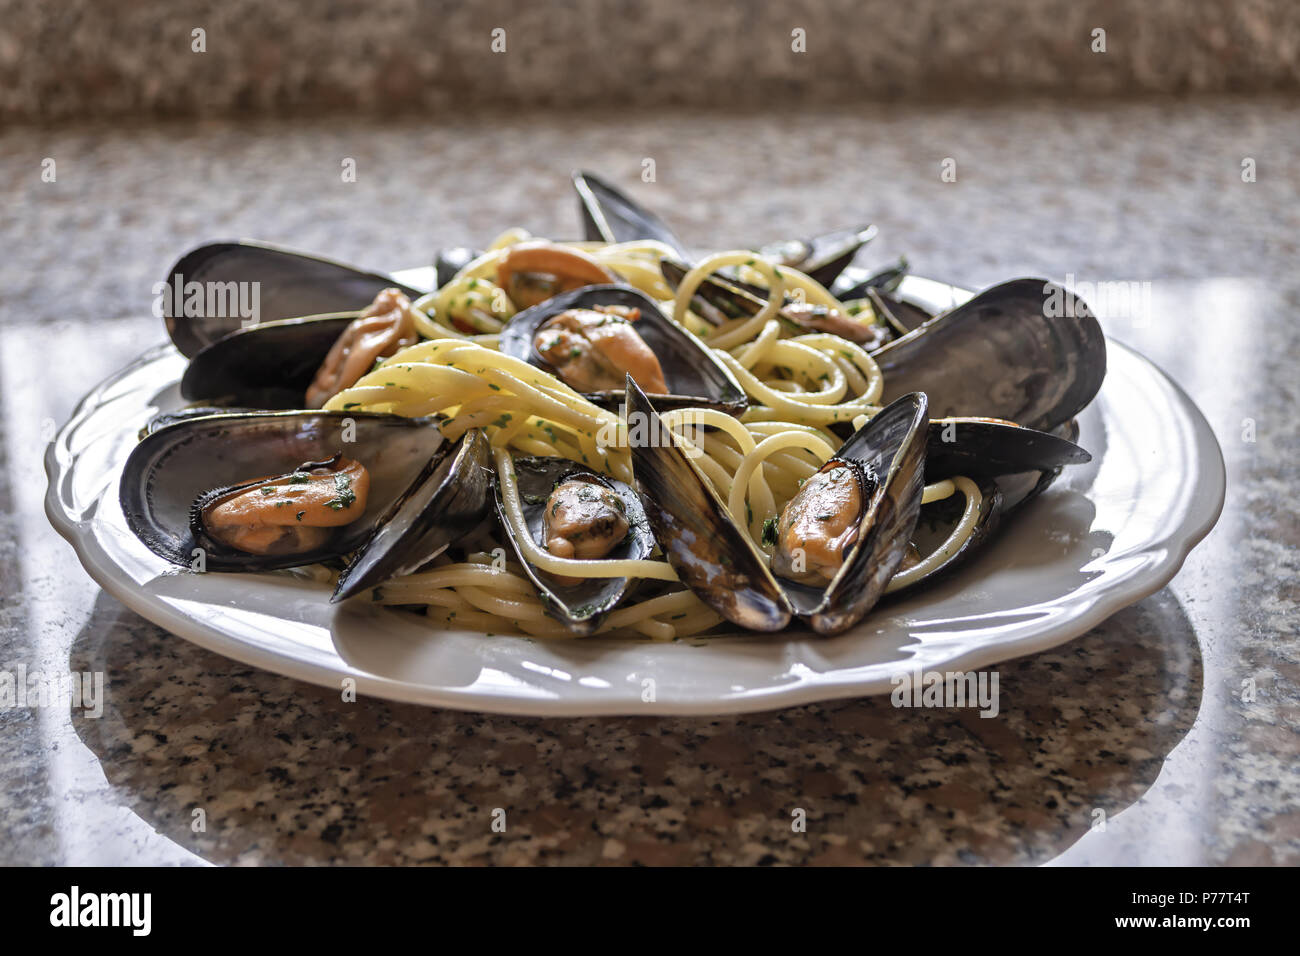 spaghetti pasta with mussels garlic and parsley 3 - Stock Image